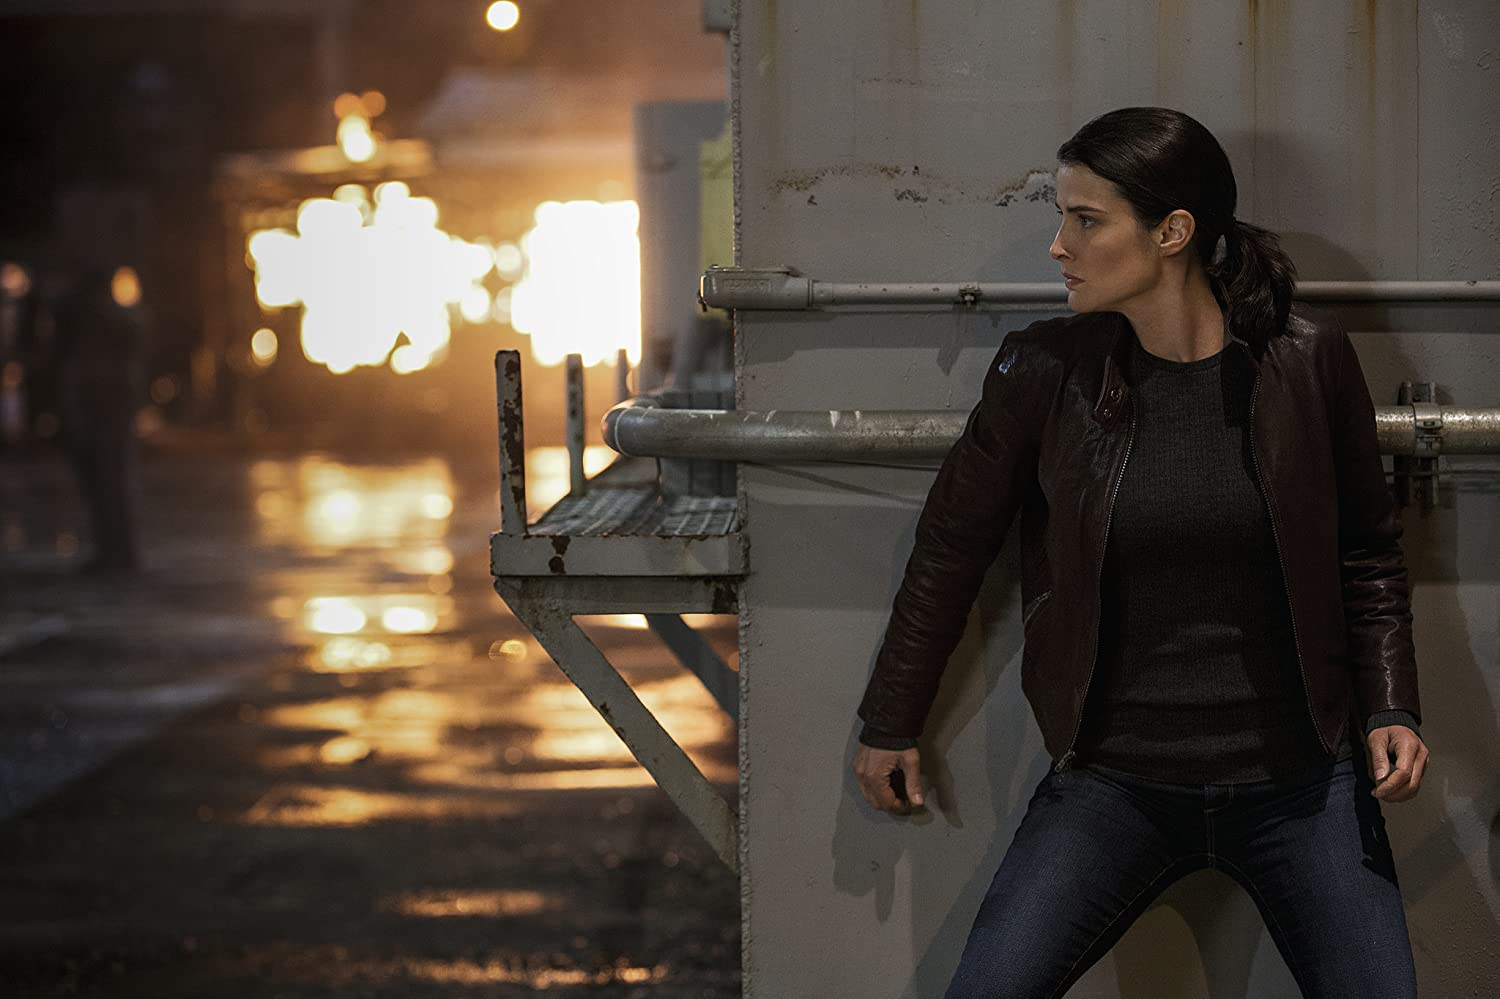 Cobie Smulders in Jack Reacher: Never Go Back (2016)